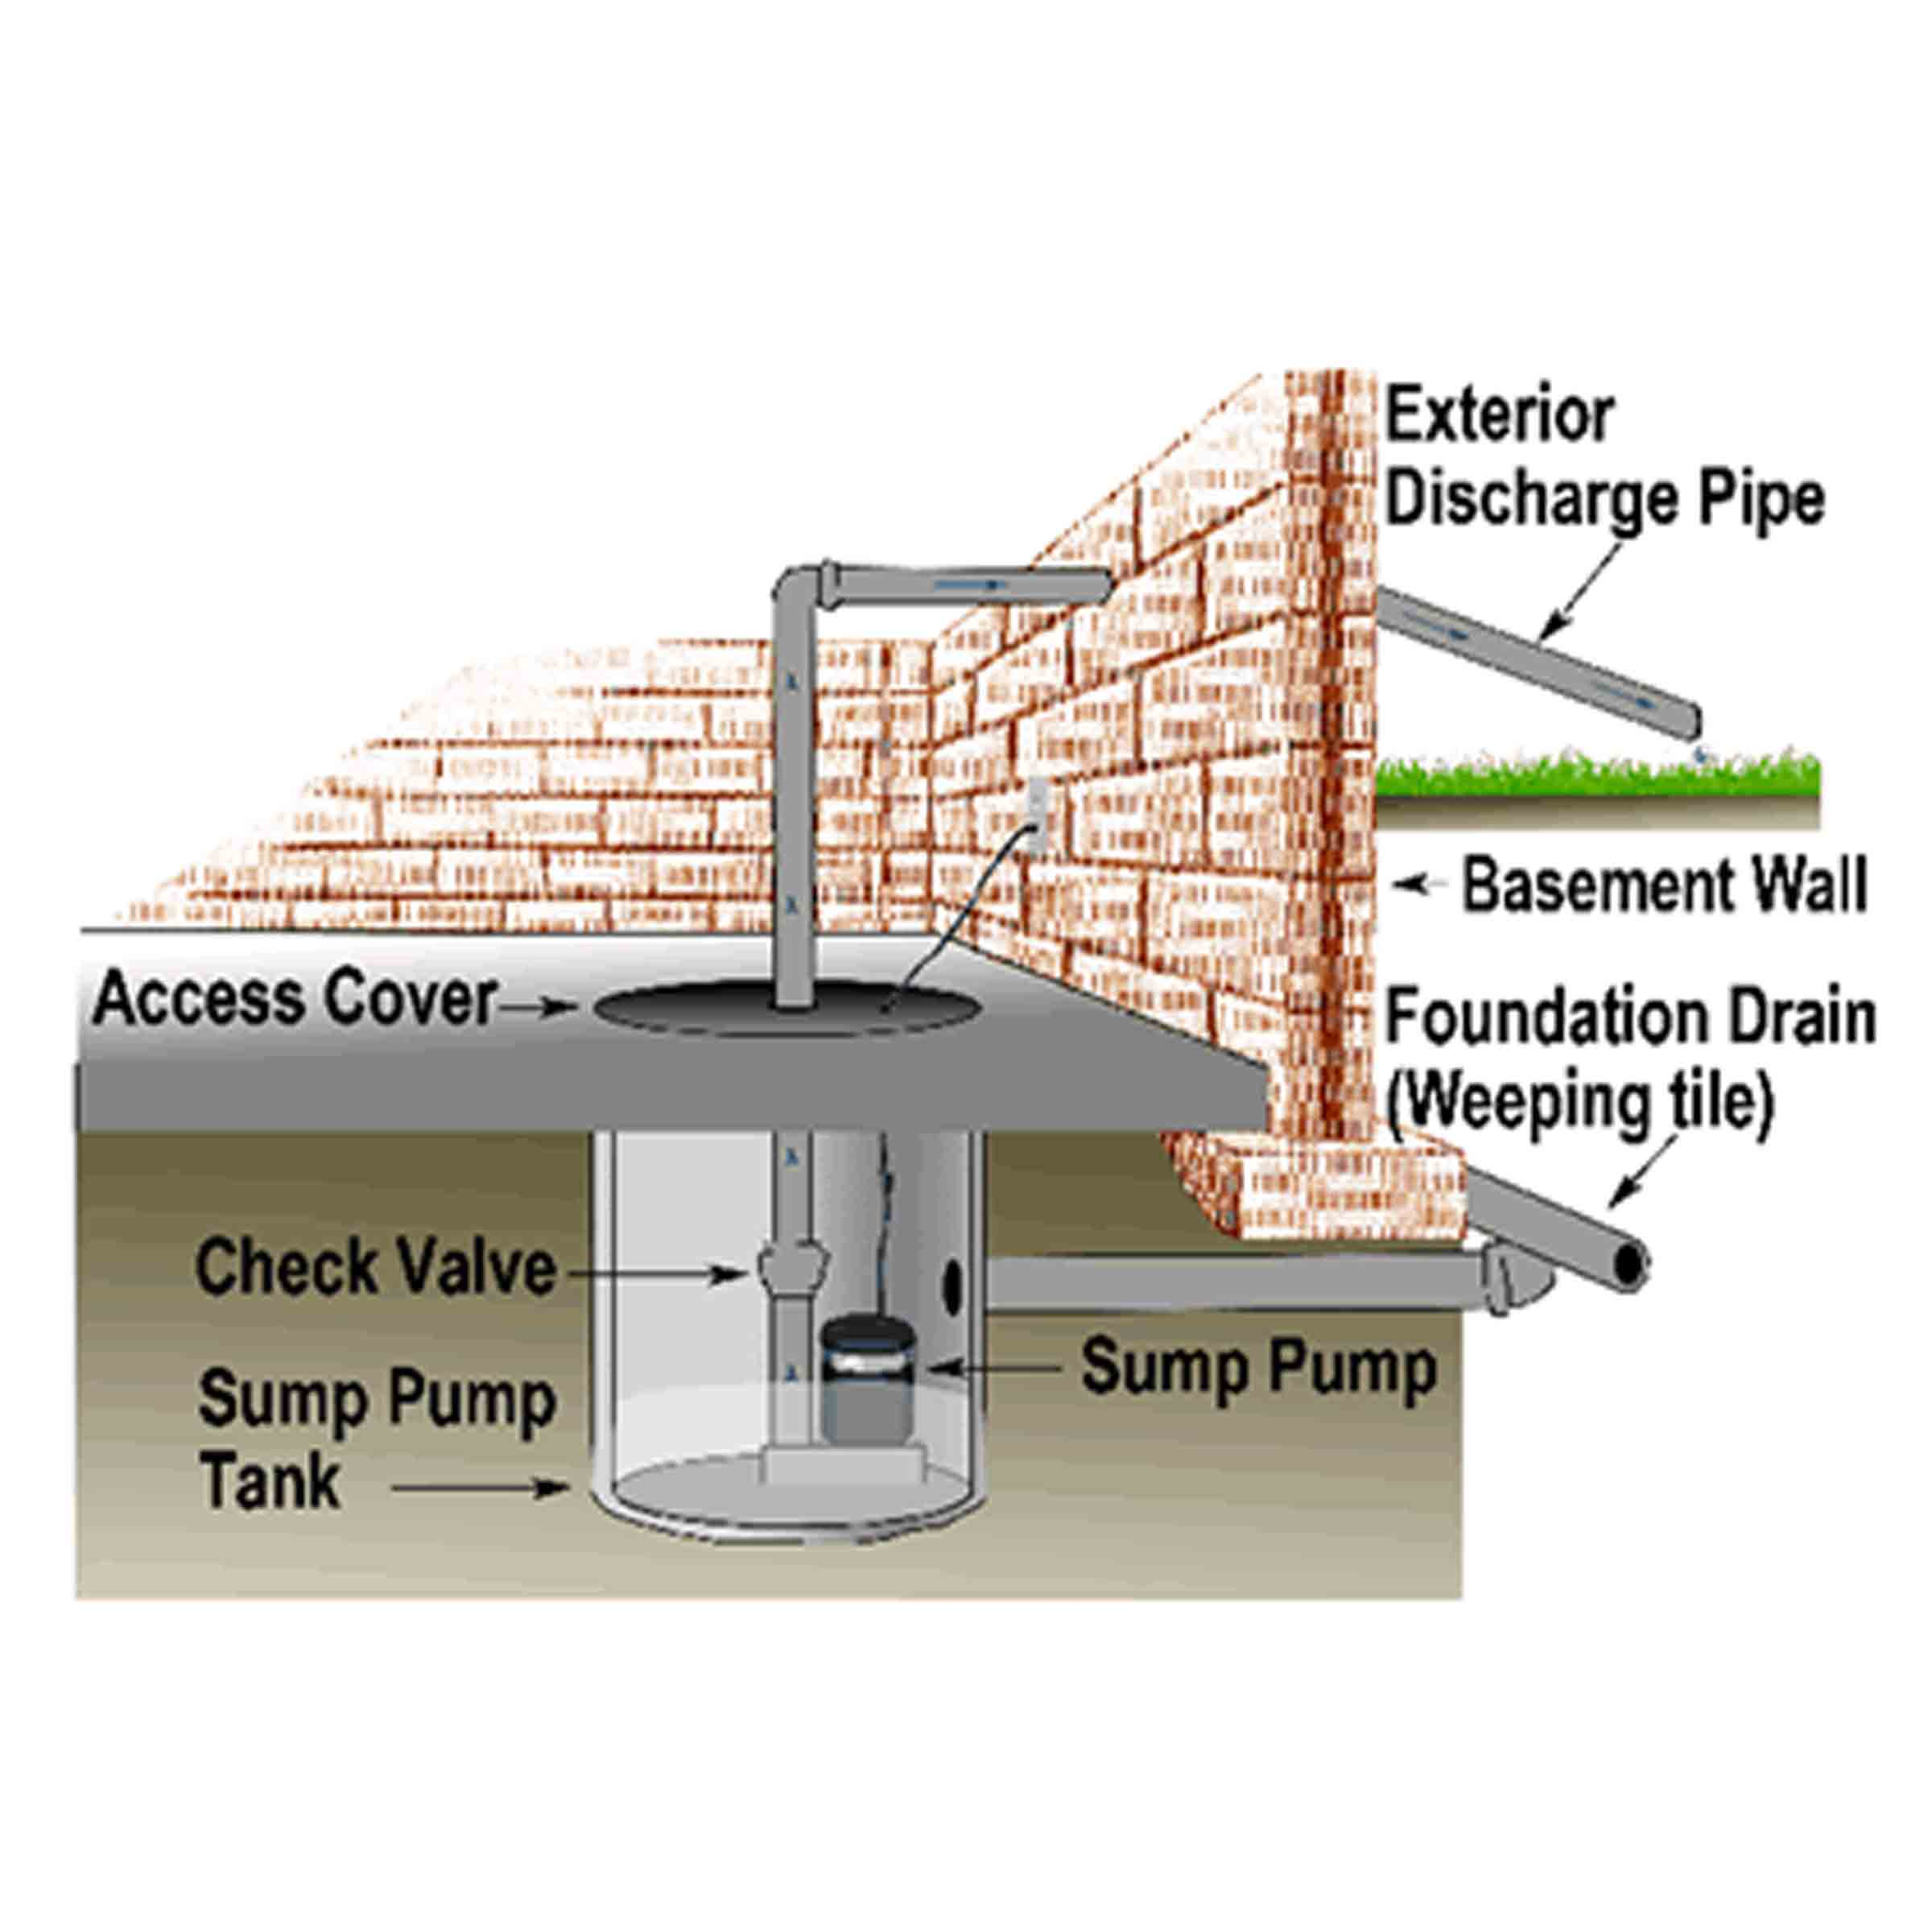 Your Sump Pump Where To Locate It What It Is And Why It S Very Important Certified Calgary Home Inspections At Nir Real Estate Inspections